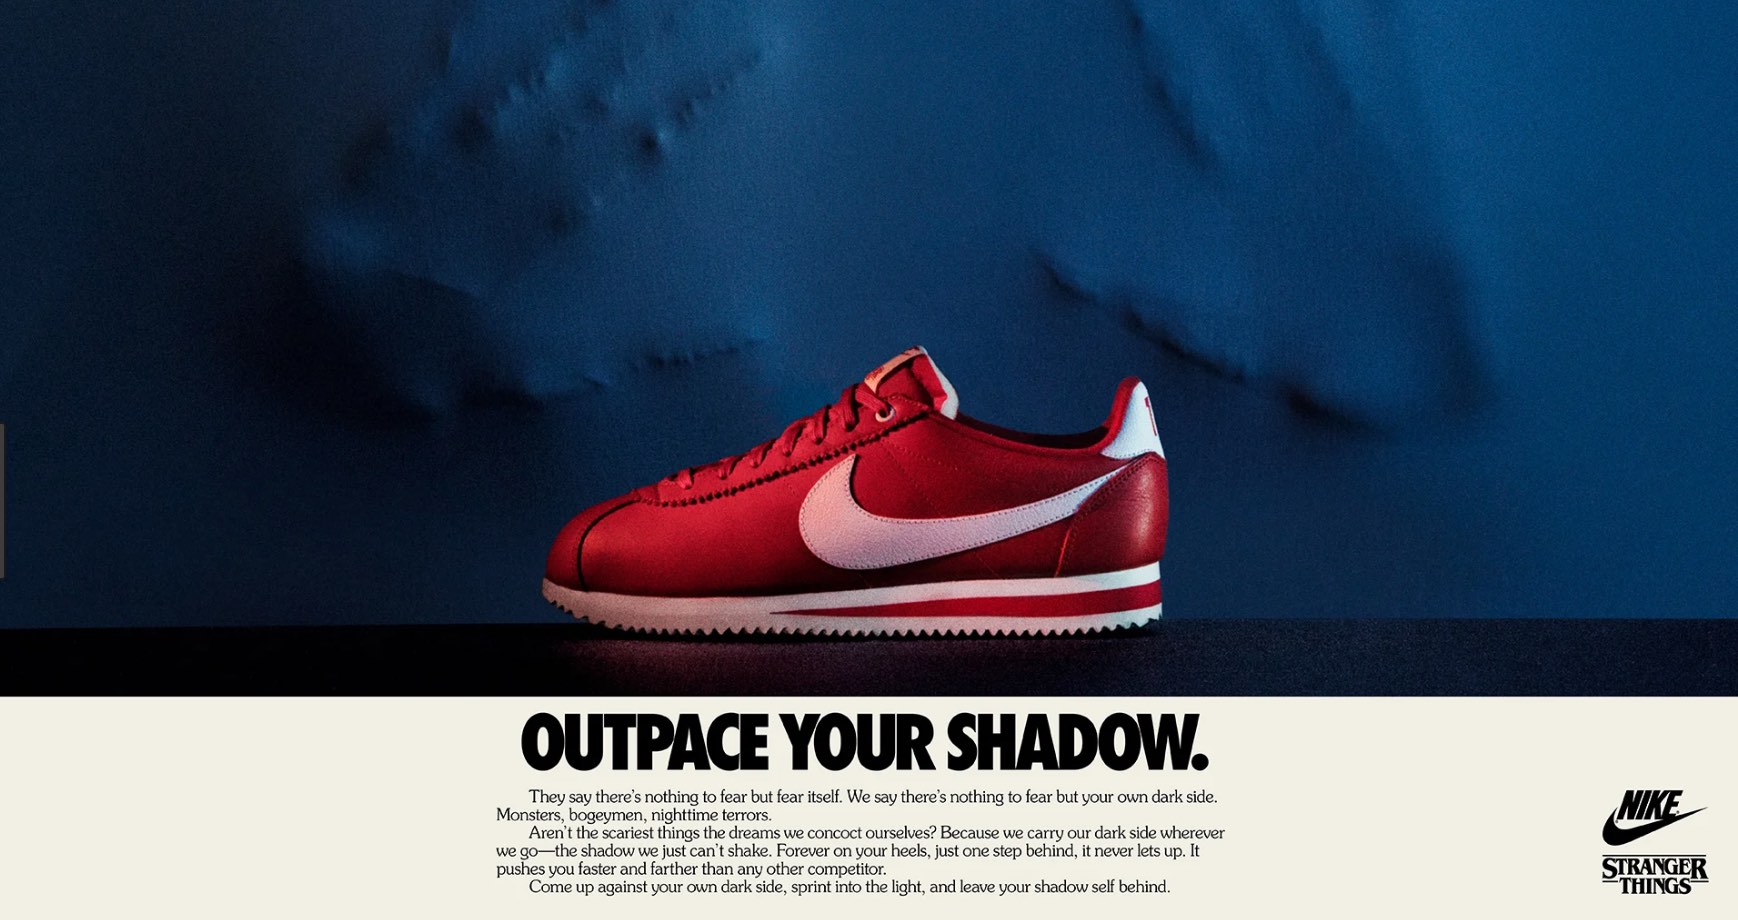 4. Steve's sneaks. Pretty basic collaboration with minimal effort from Nike and lots of cash for the Duffer brothers. Neat.  https://www.nike.com/us/en_us/c/stranger-things